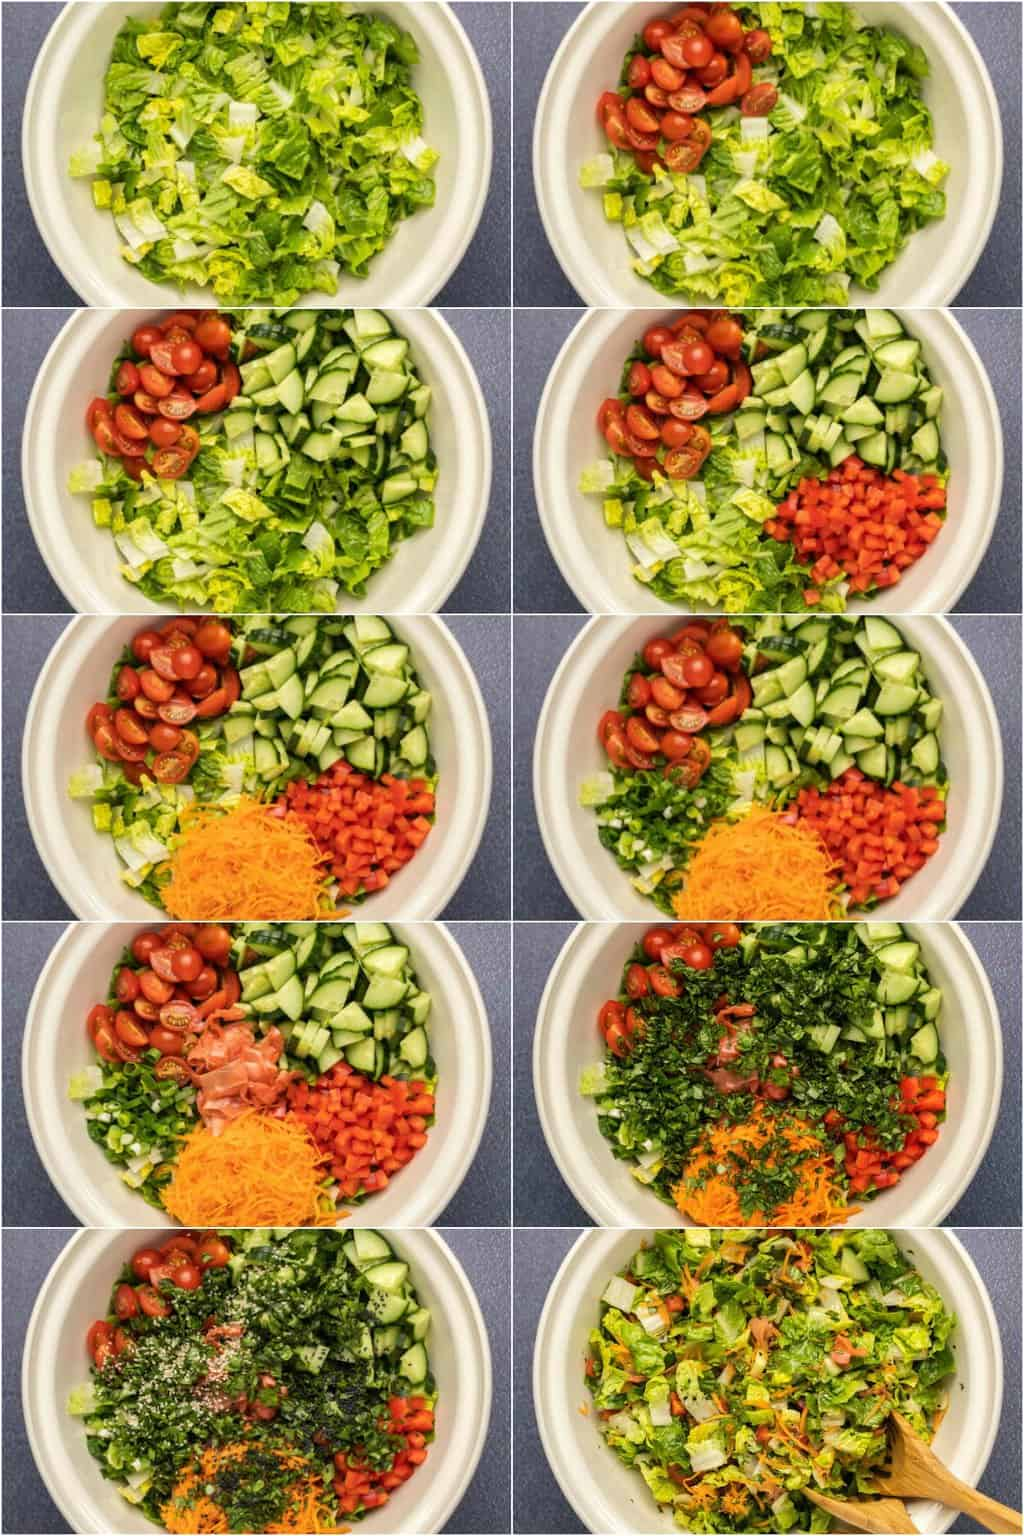 Step by step process photo collage of assembling a tofu salad.